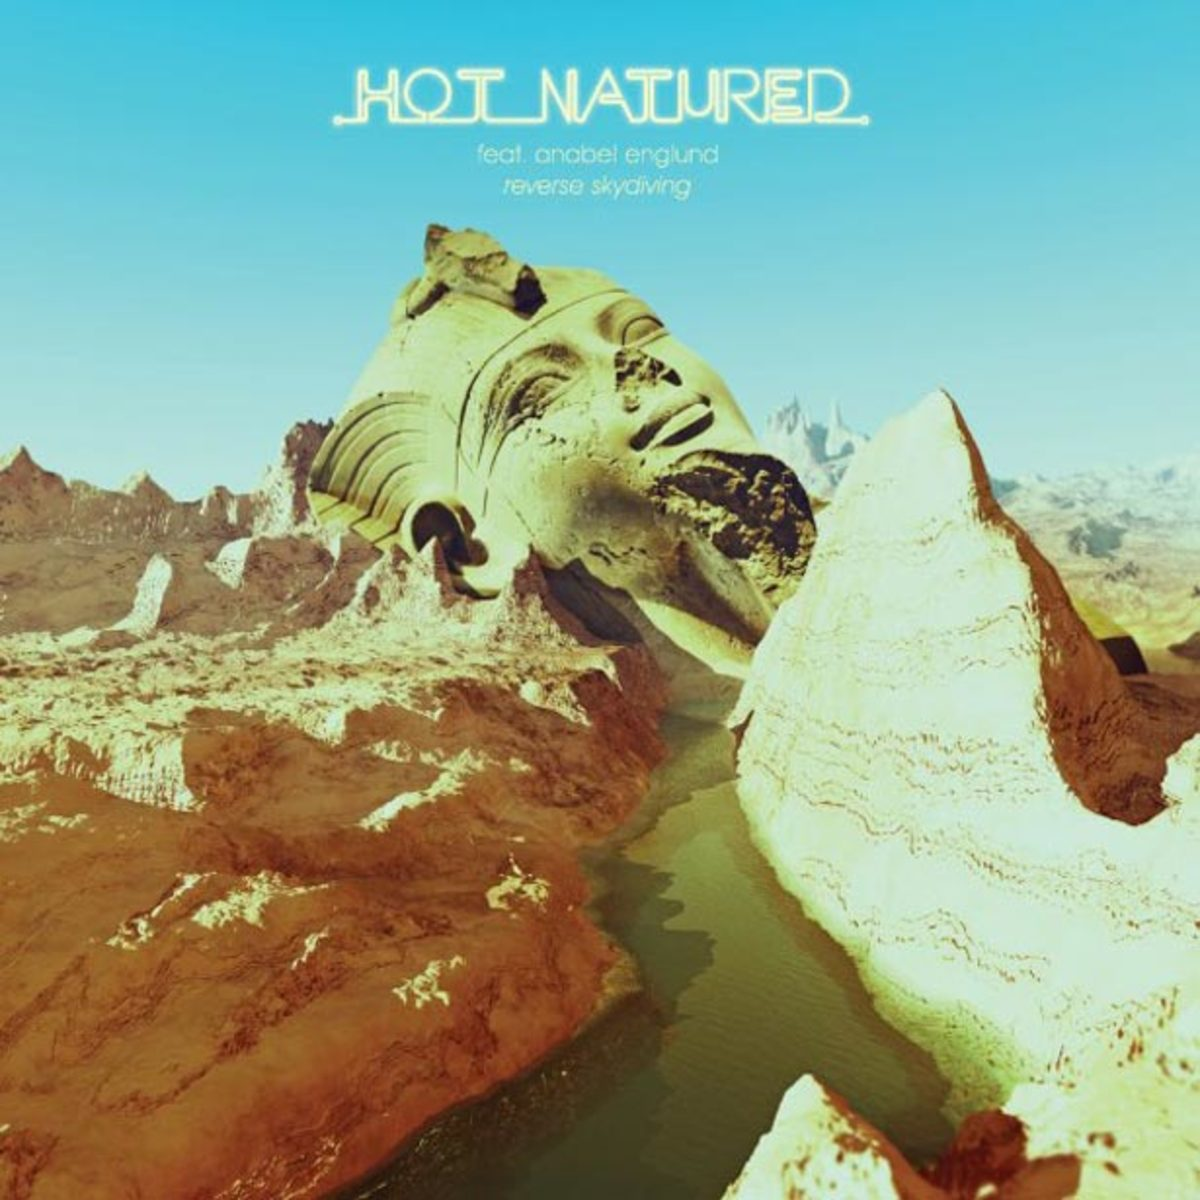 """Review: Hot Natured """"Reverse Skydiving"""" via FFRR"""